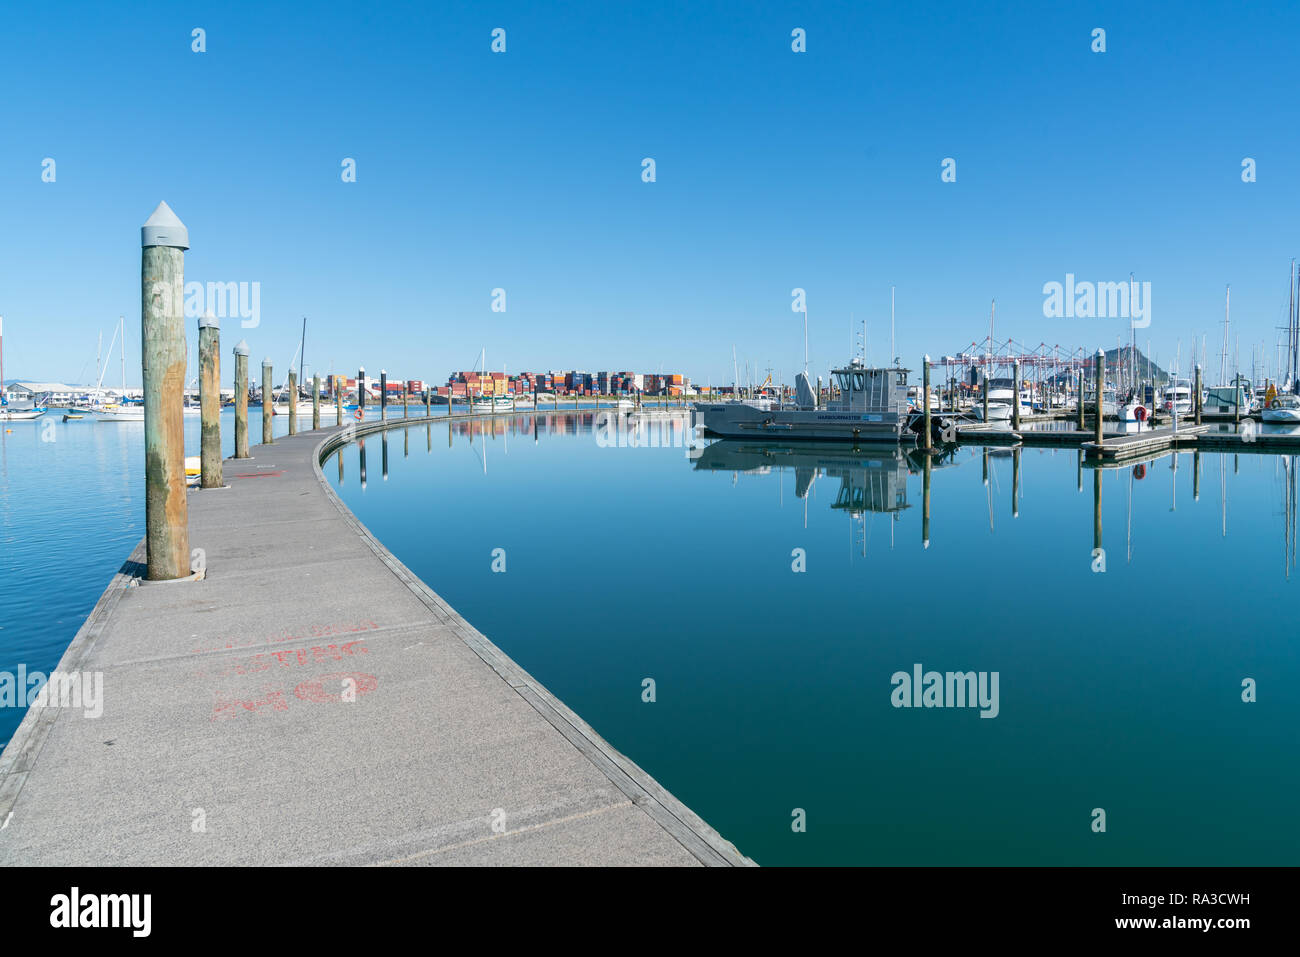 TAURANGA, NEW ZEALAND - DECEMBER 18 2018; Long curving lines of floating pier of Bridge Marina and boats with port container storage and iconic Mount  - Stock Image